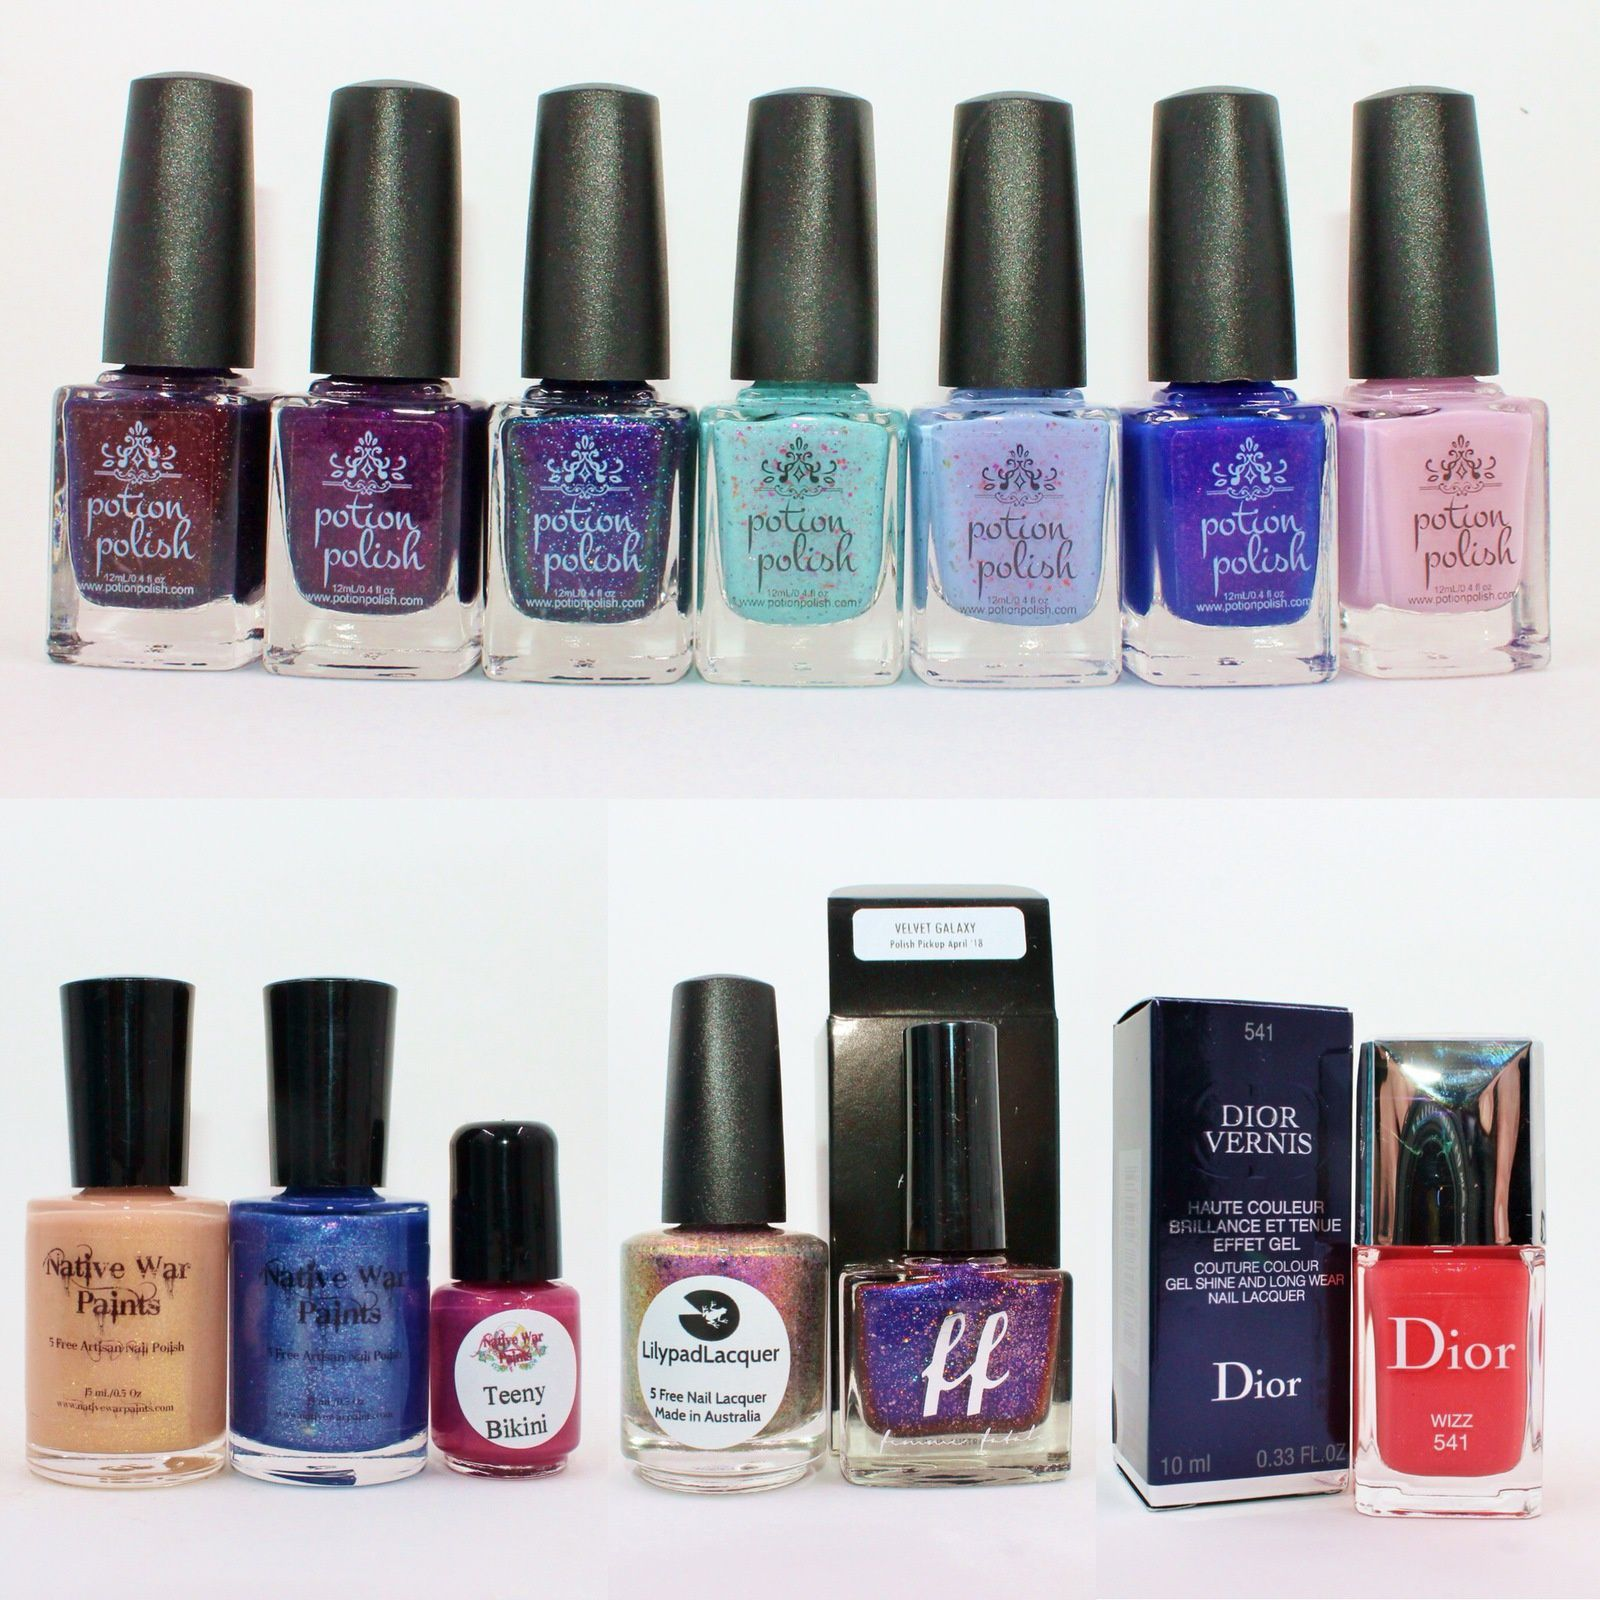 Potion Polish Hot Maple Toddy, Love potion, Dose of Euphoria, Vintage, Transient, Windchill, Afterglow. NWP monthly Box - April 2018. PPickup pack - April 2018 (Lilypad Lacquer Is Anyone Out There? & Femme Fatale Cosmetics Velvet Galaxy).Dior Wizz.